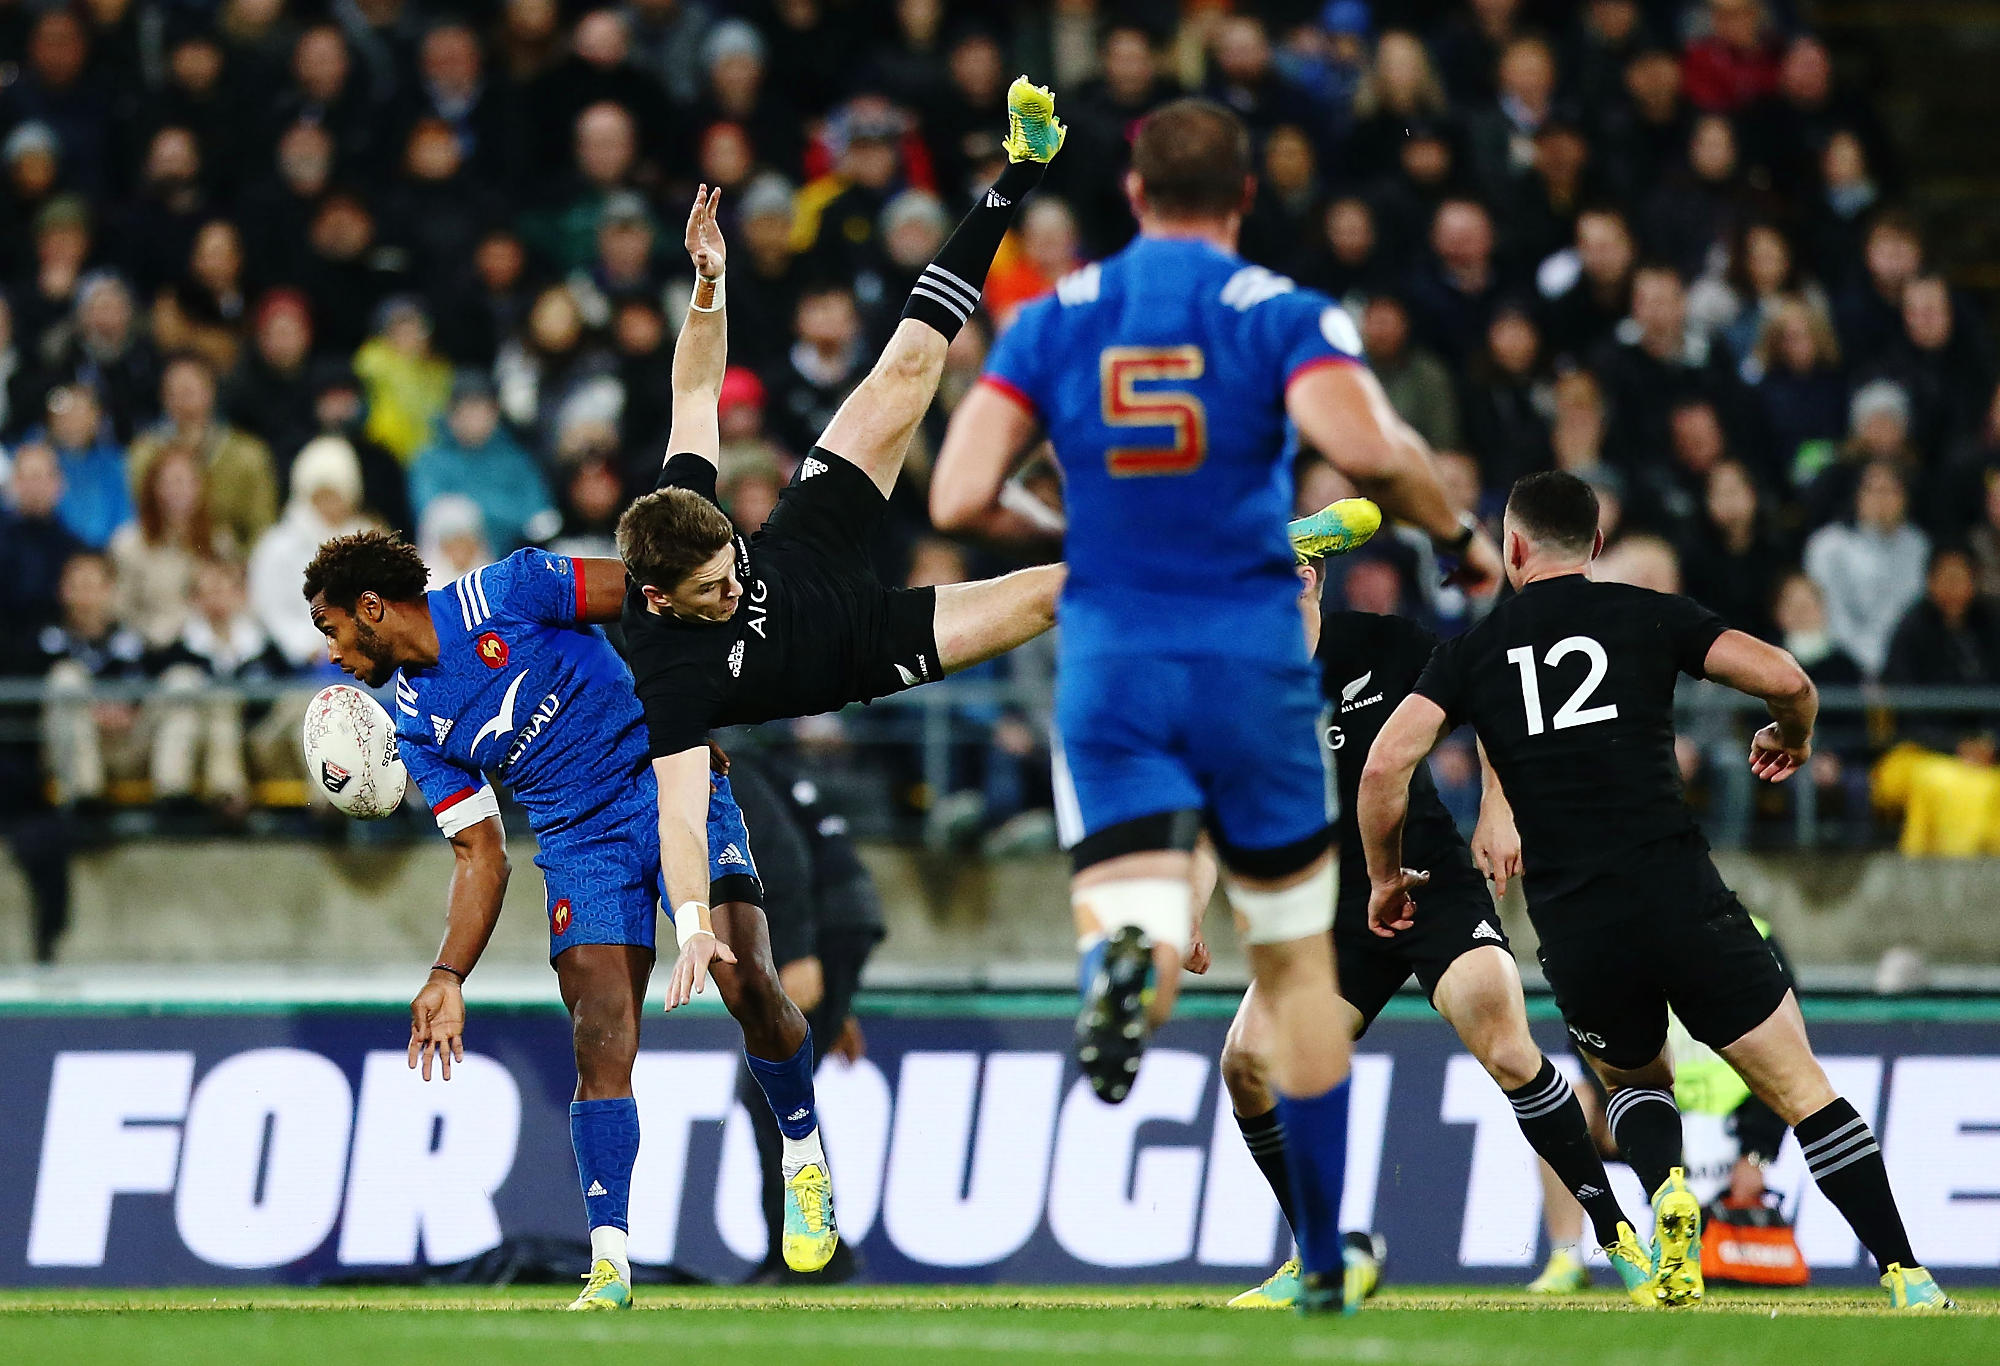 Benjamin Fall of France tackles Beauden Barrett of the All Blacks in the air